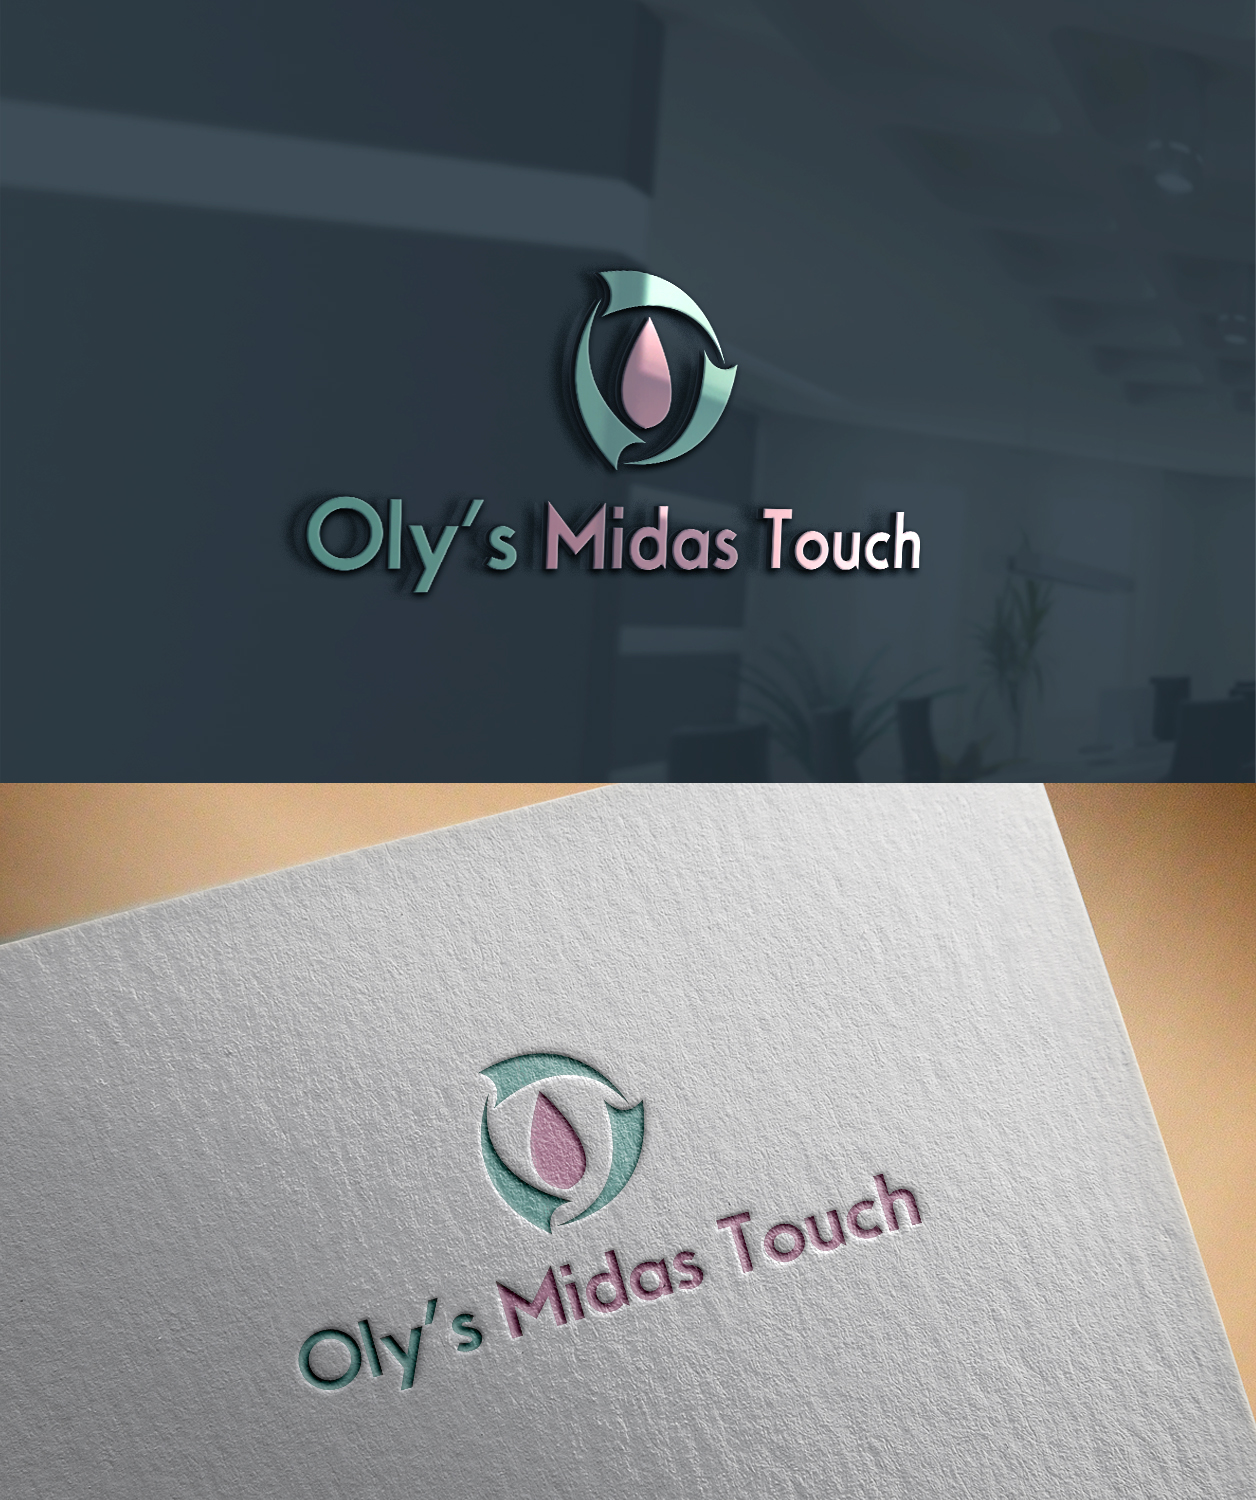 Elegant Playful Cleaning Service Logo Design For Oly S Midas Touch By Midira 2 Design 22427115